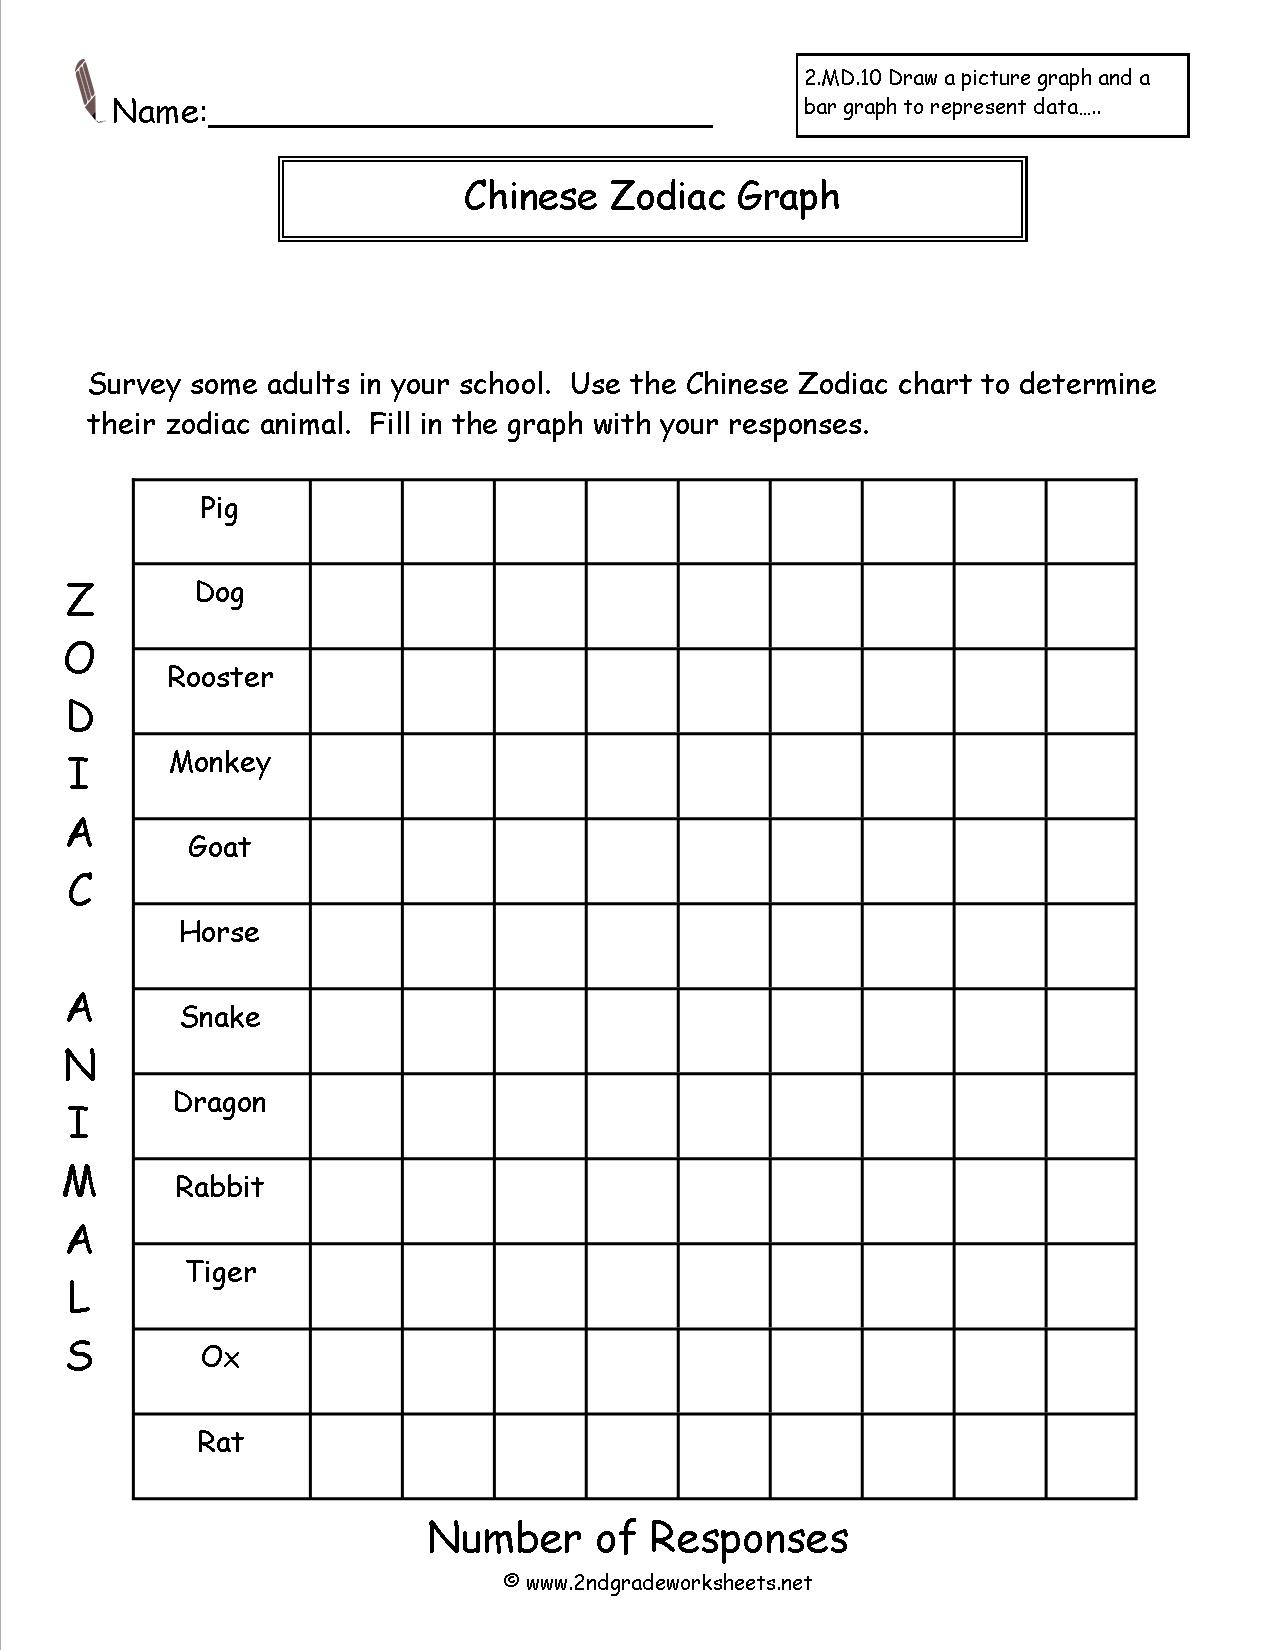 Free Reading And Creating Bar Graph Worksheets | Free Printable Graphing Worksheets